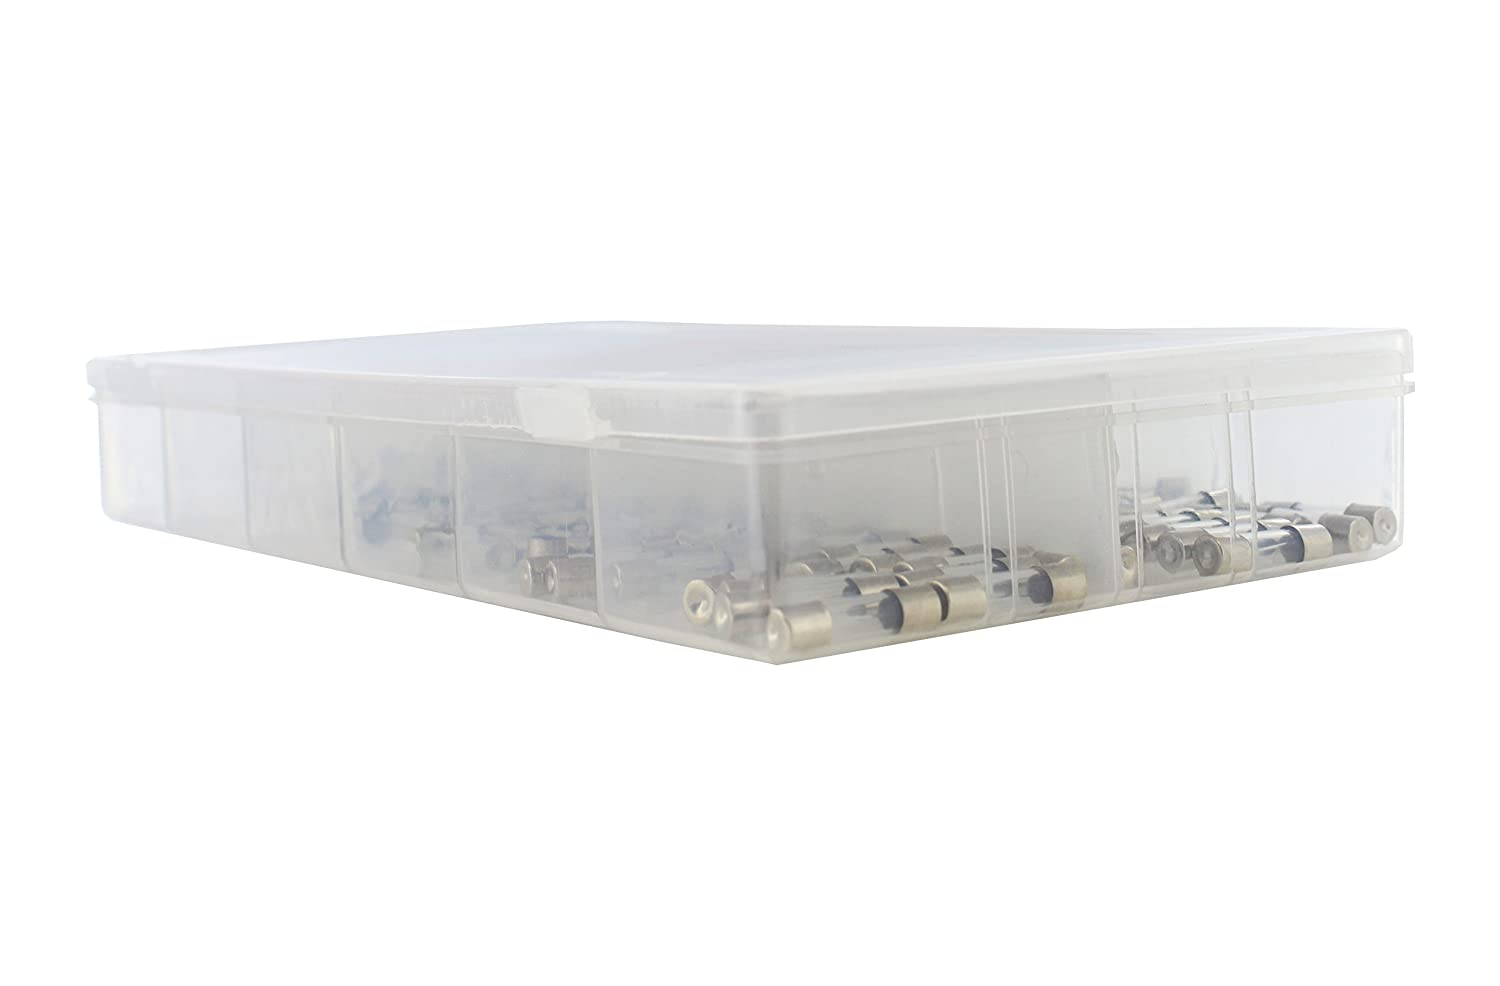 0.2A to 15A Fuses Assortment Kit for Automotive 12 Volt ABN Glass Tube 5x20mm 100-Piece Fuse Set with Carrying Case